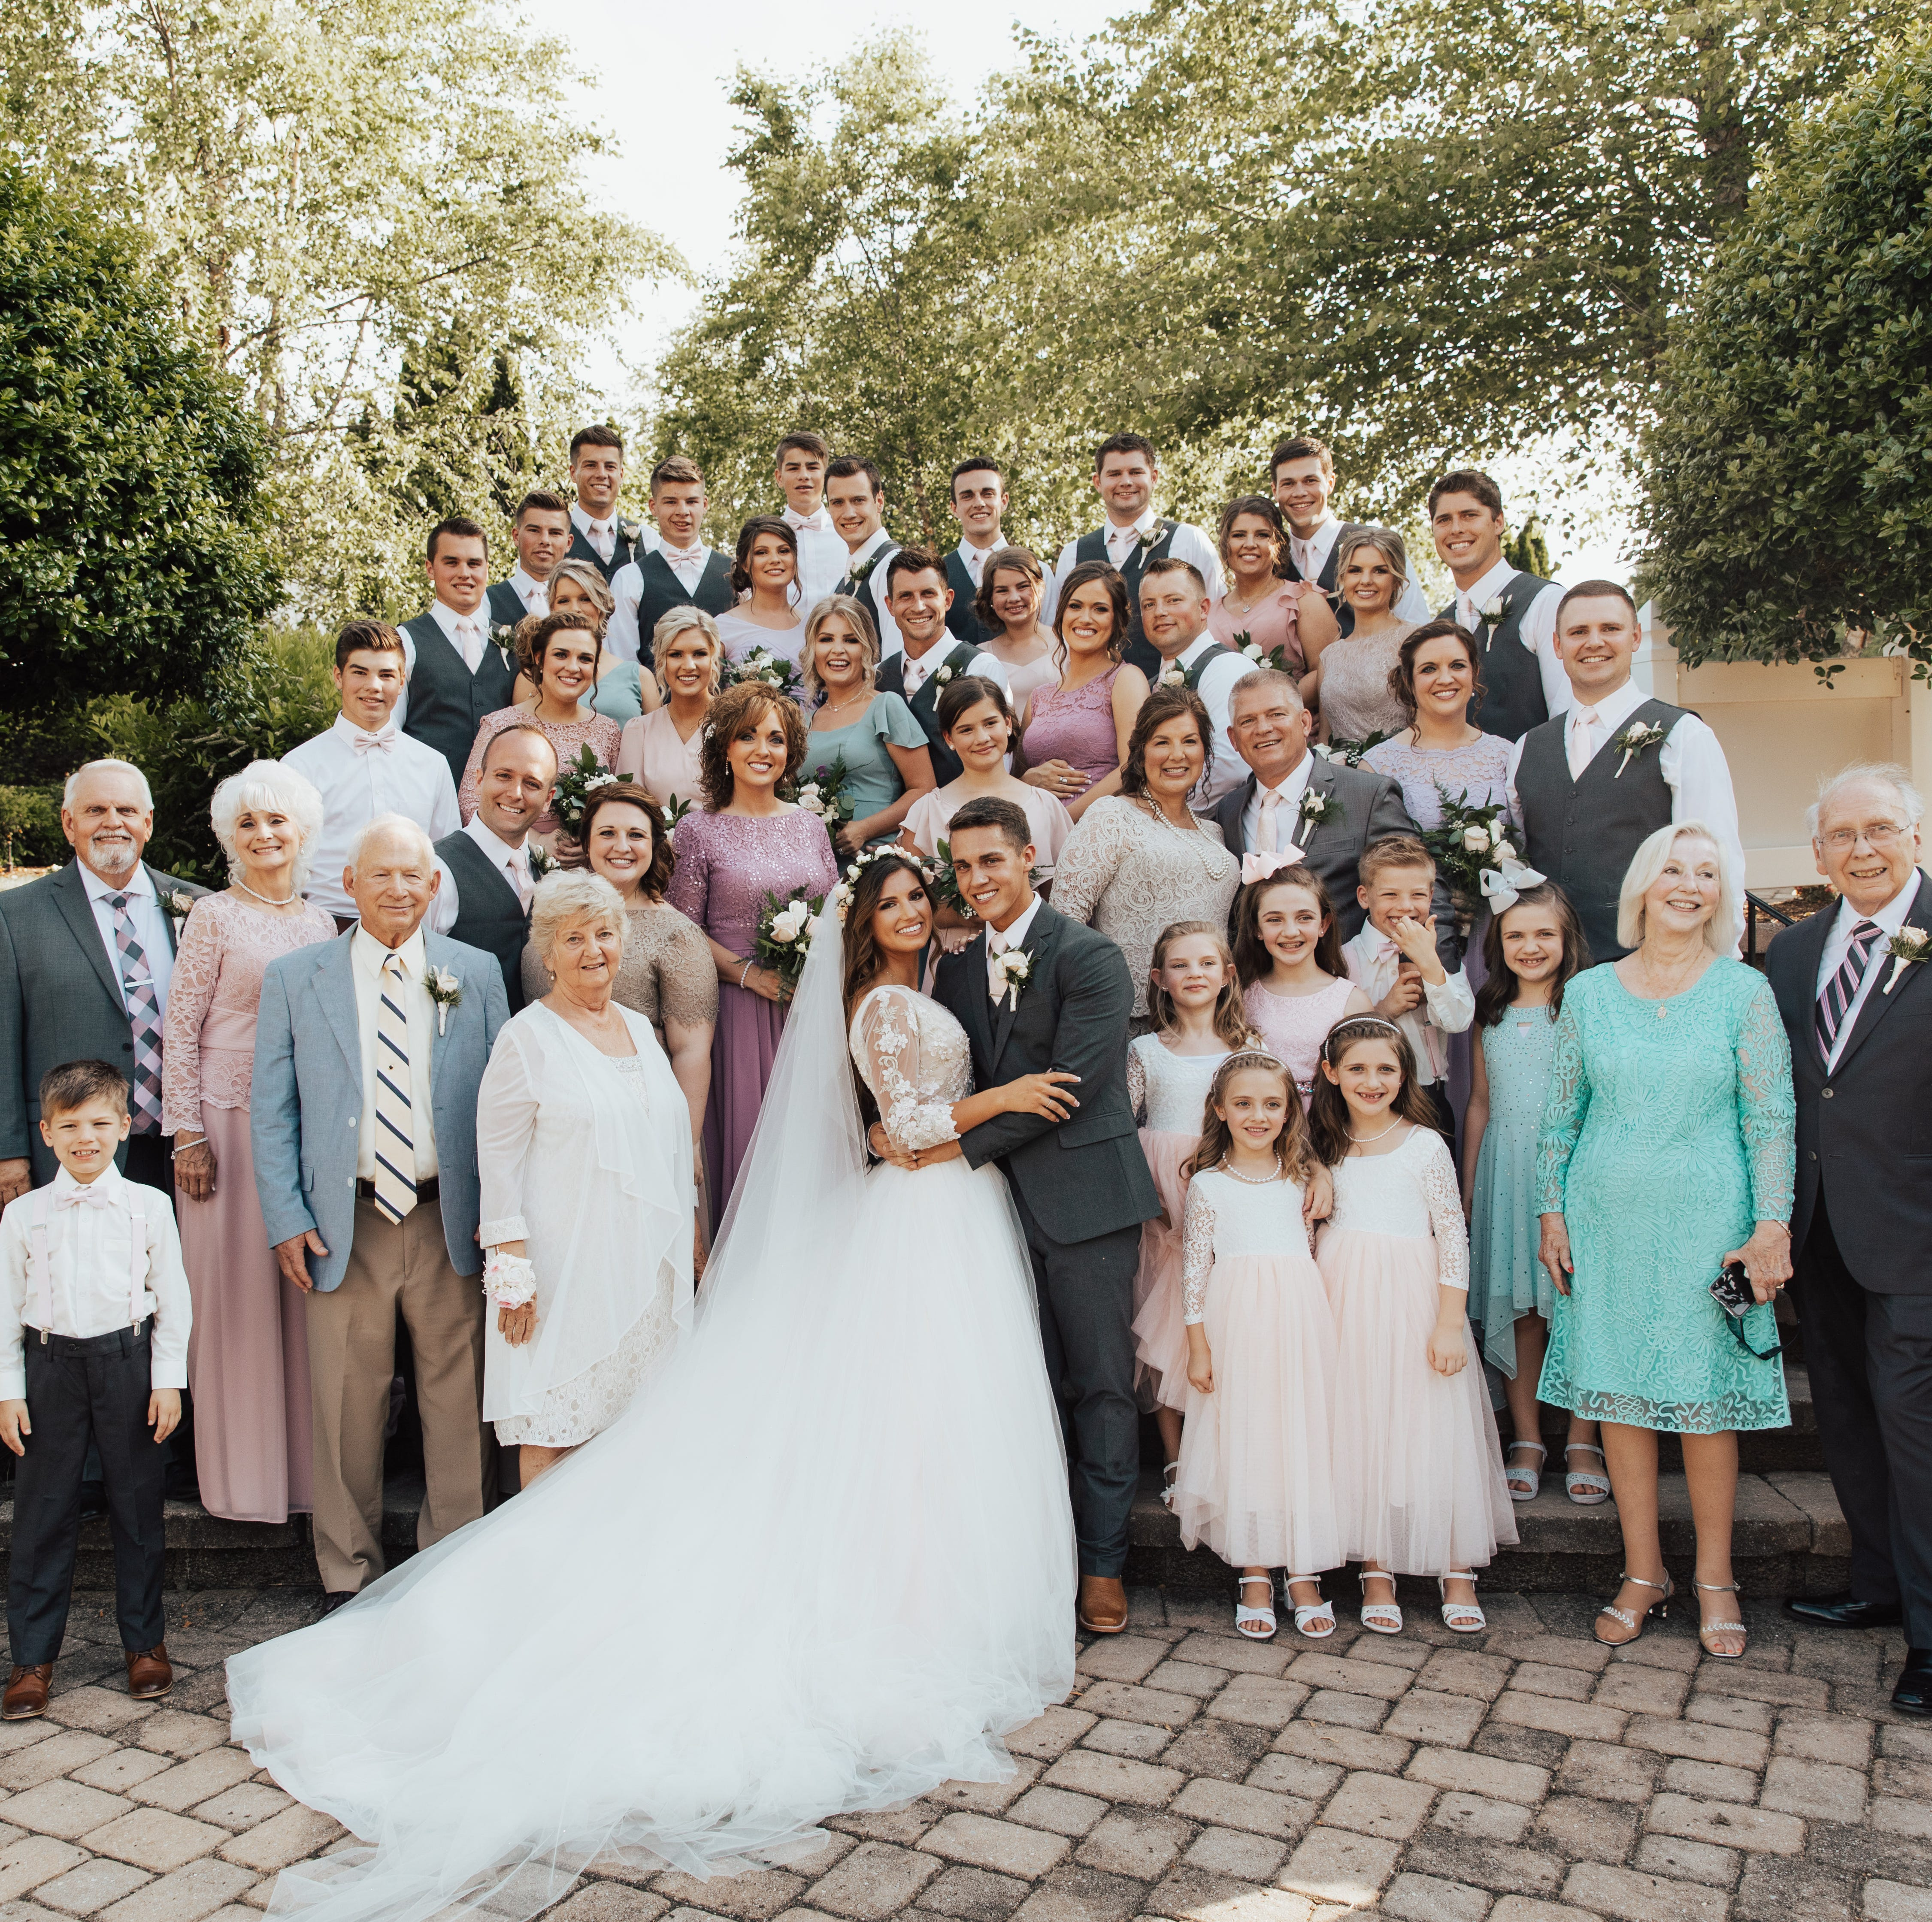 'Bringing Up Bates:' I went to Carlin Bates' wedding. This is what it was like.